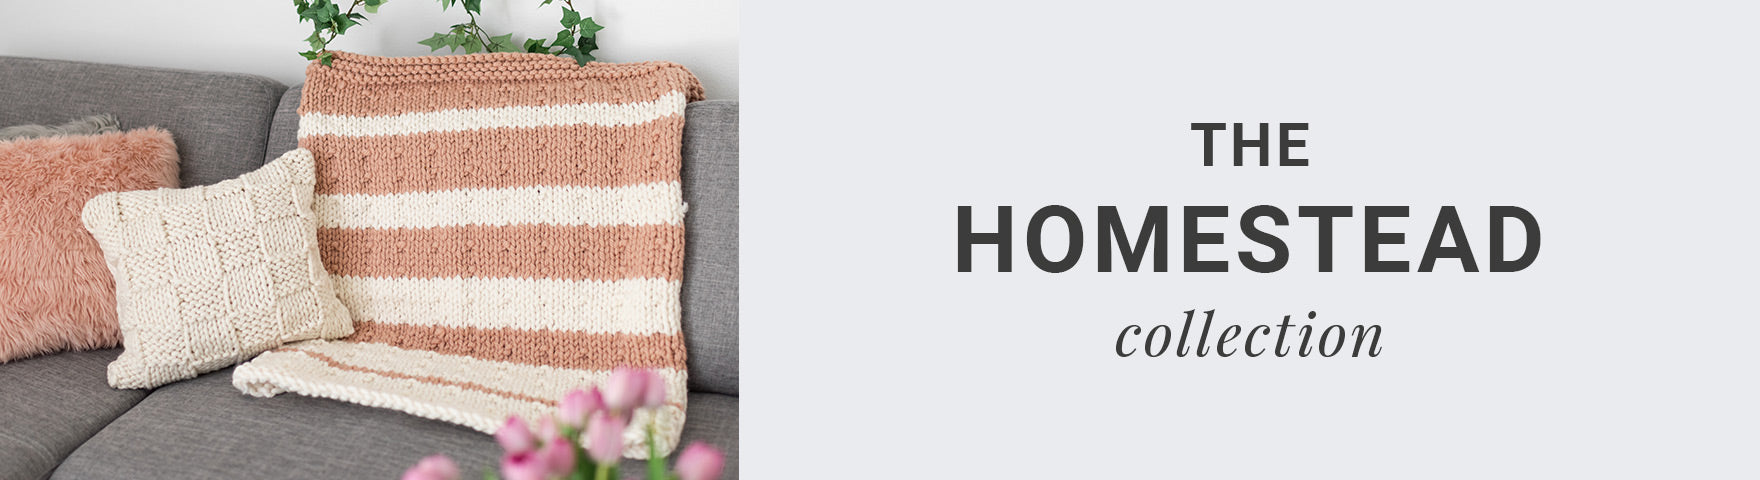 The Homestead Collection | Stitch & Story